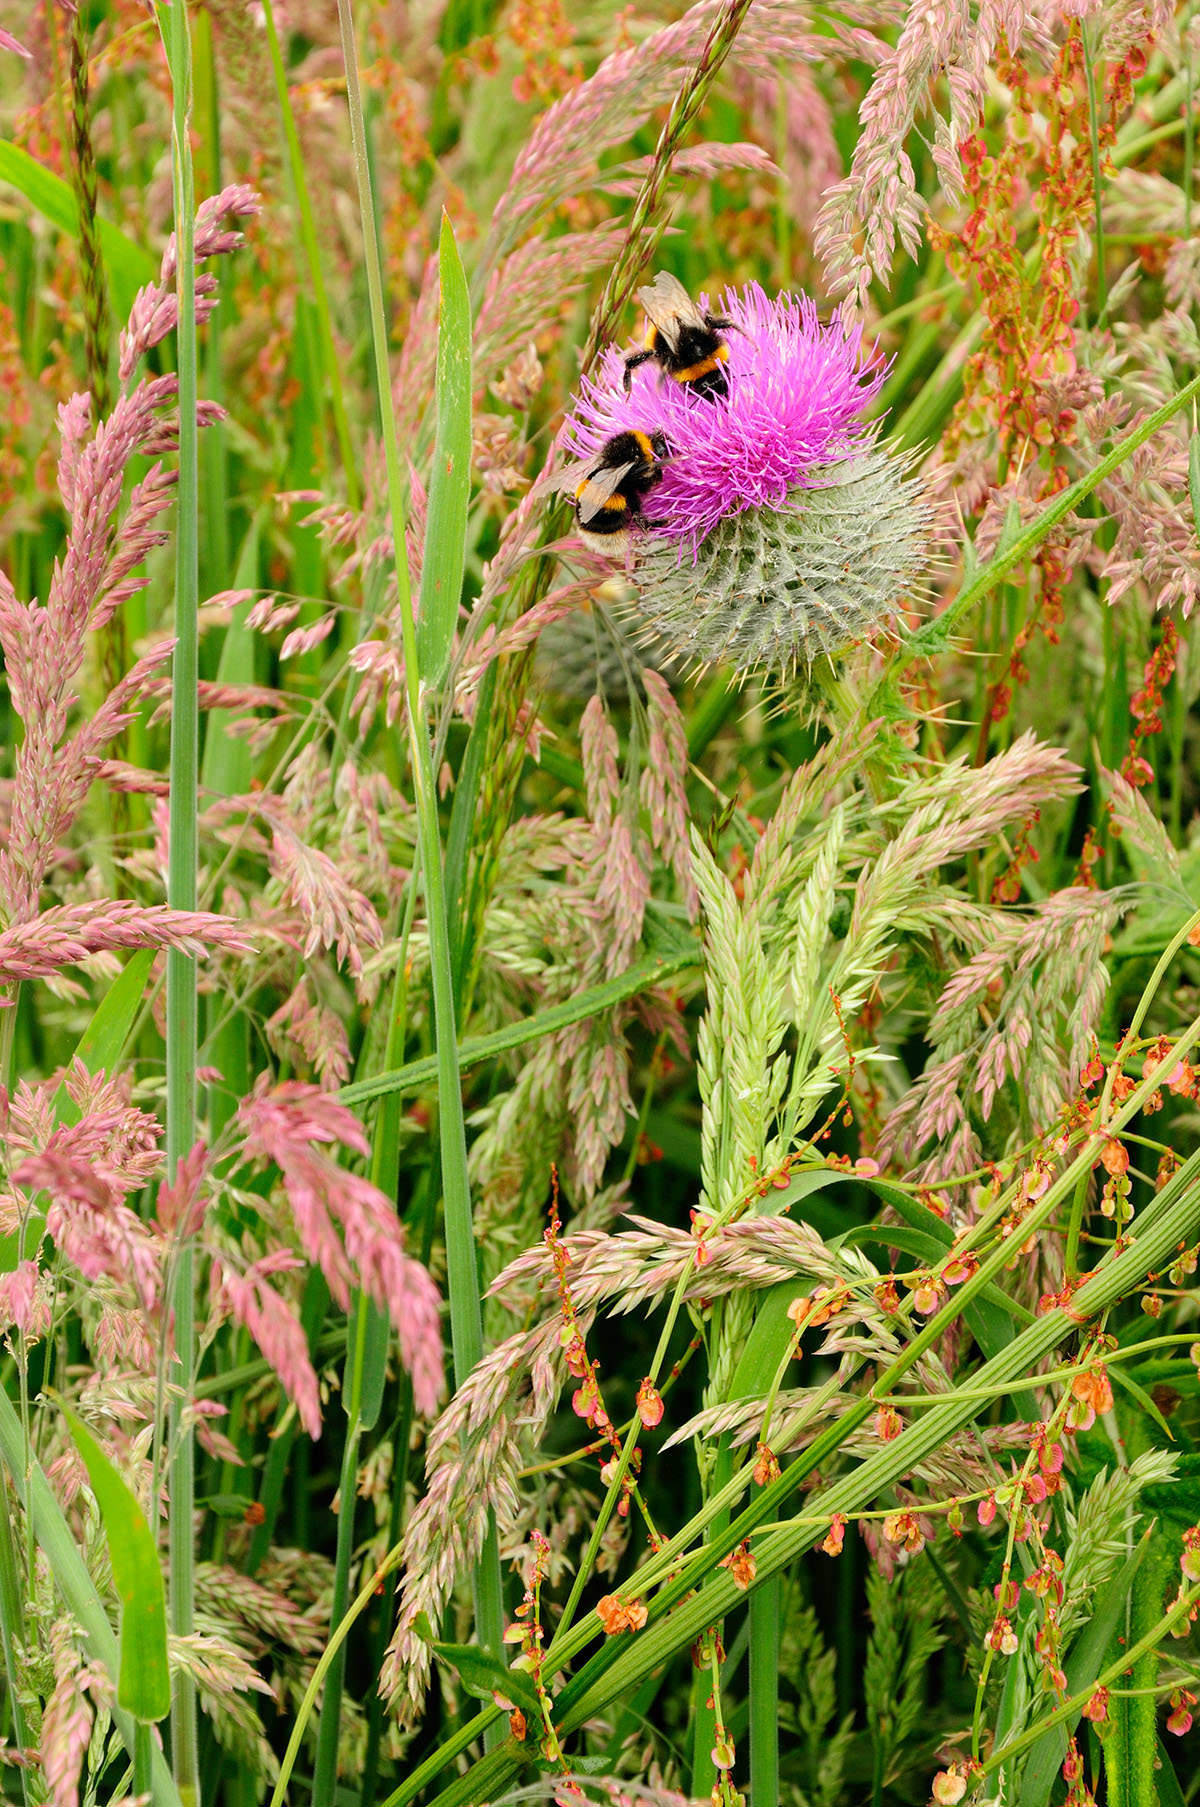 Two bumblebees on the purple jagged head of a Scottish thistle, growing among long grass with green and brown tones